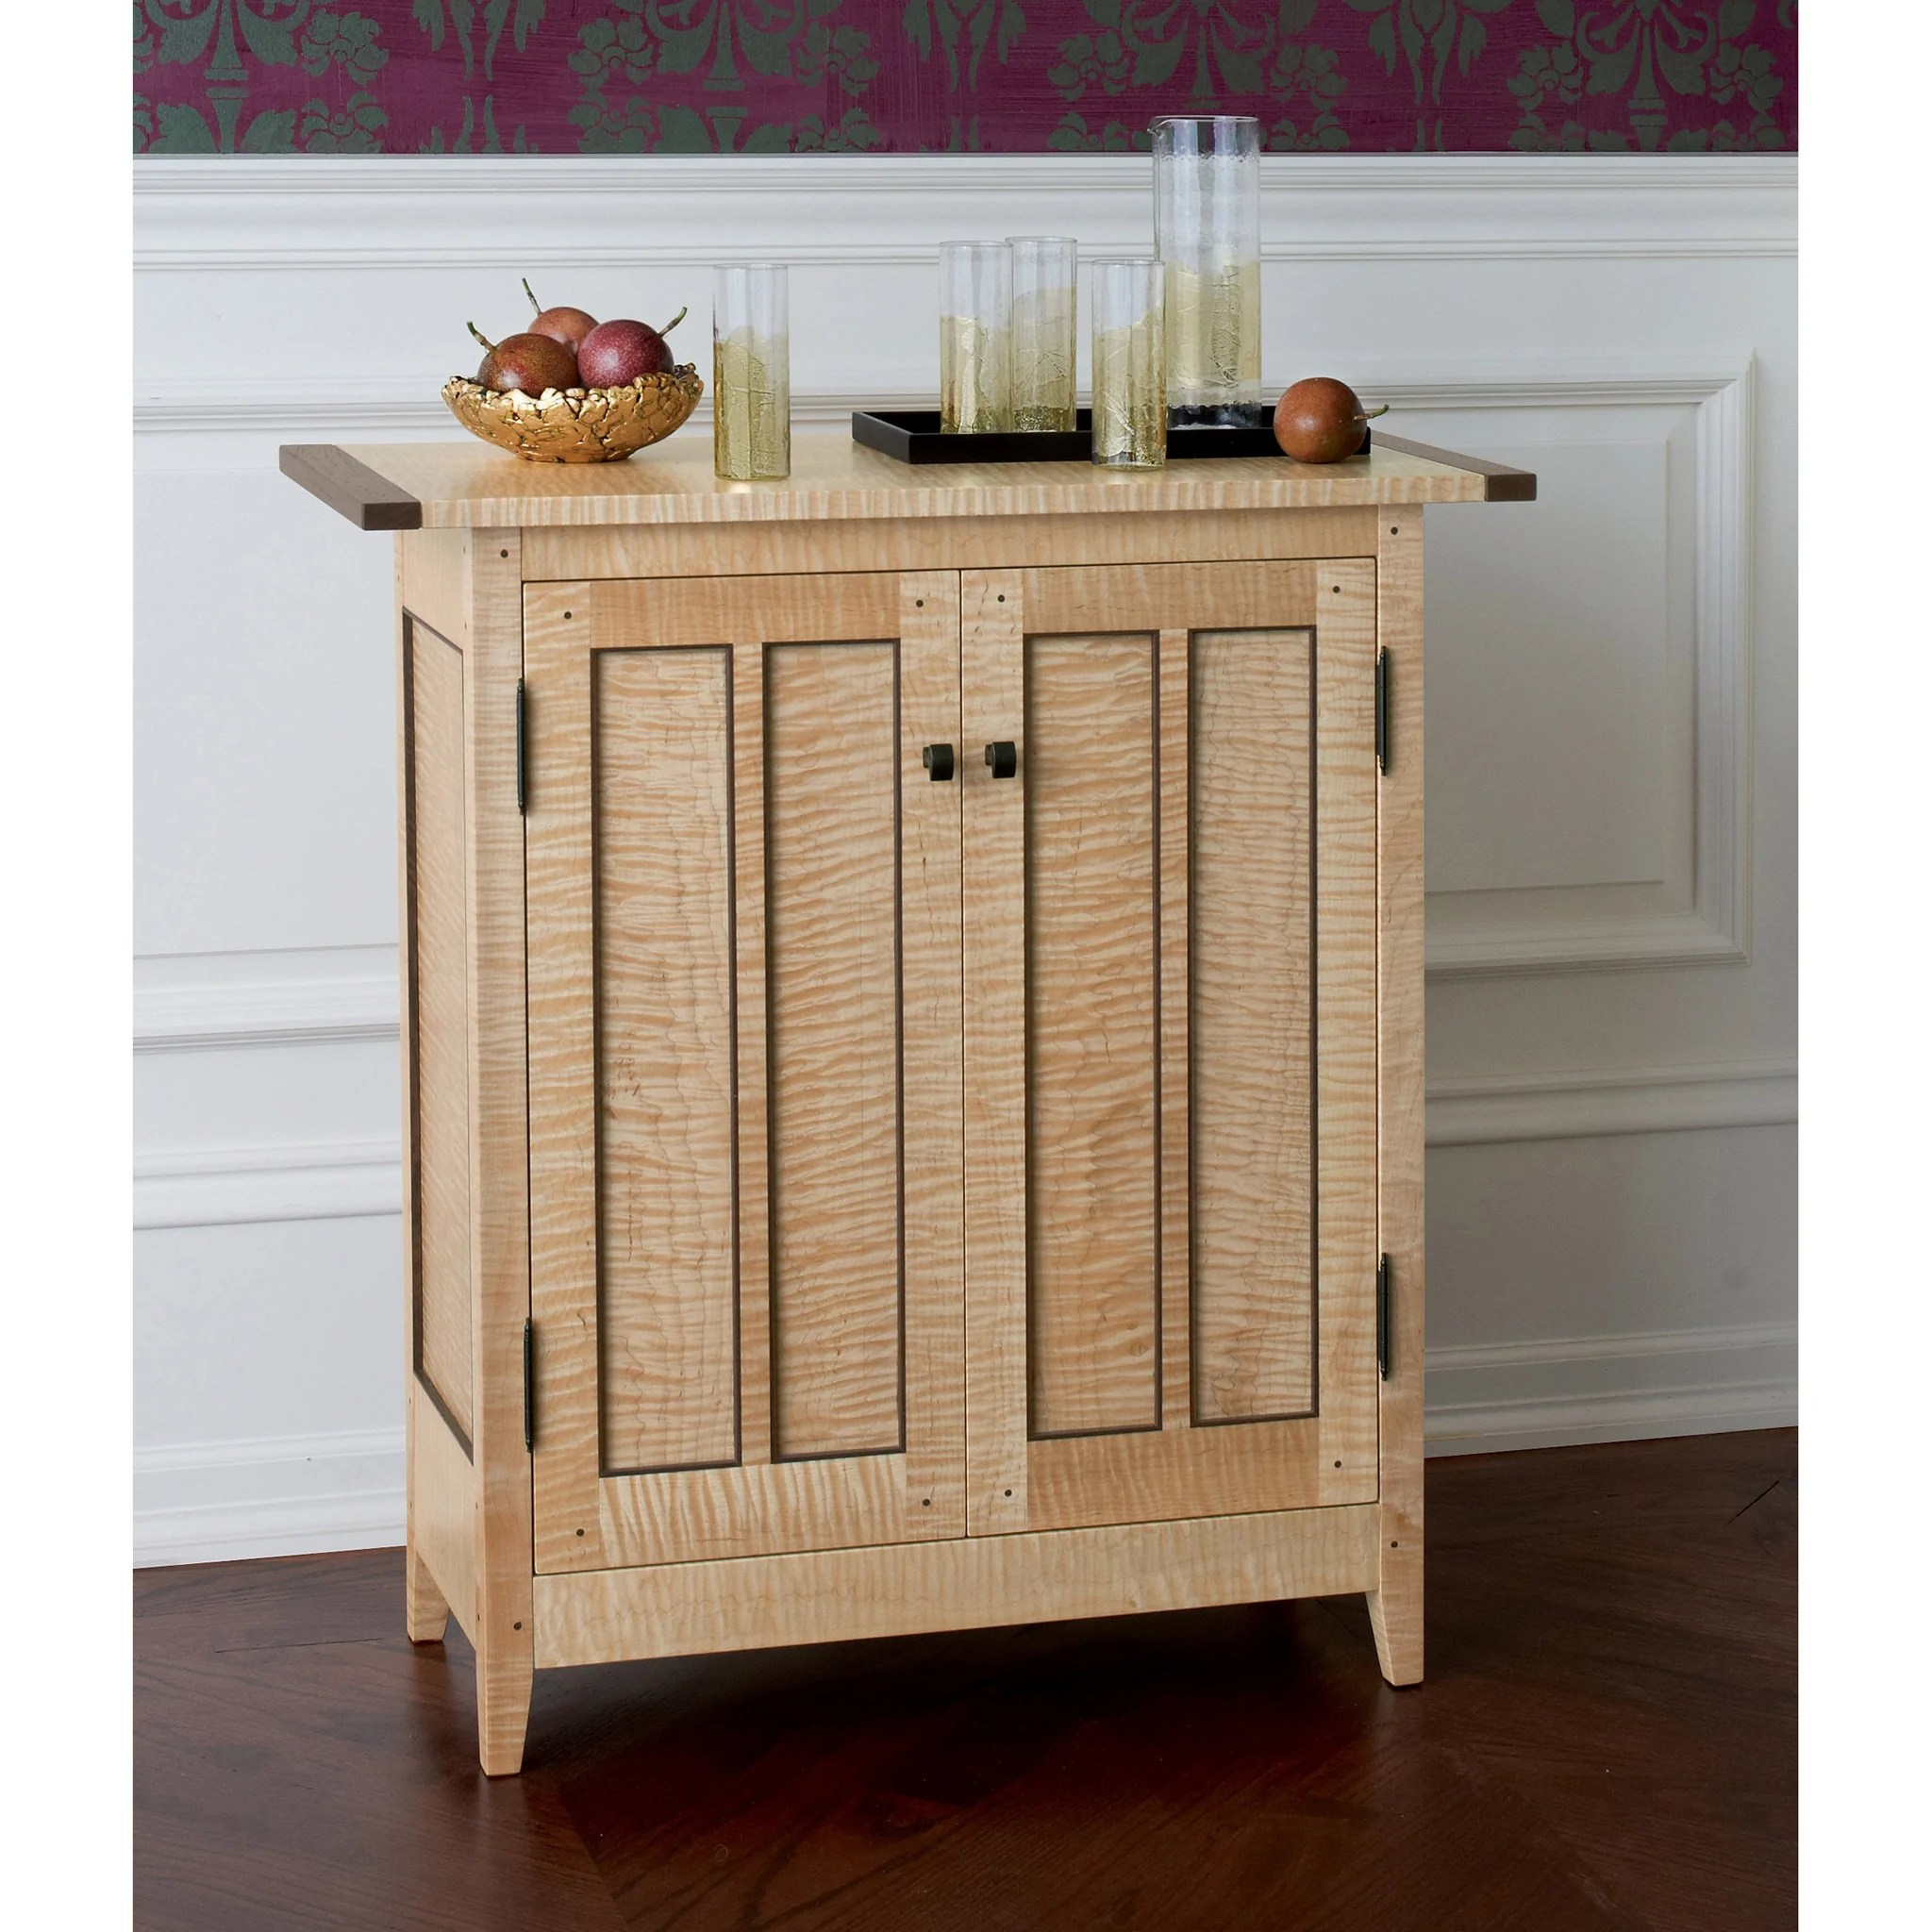 Thomas William Furniture Tiger Maple Side Cabinet Artistic Artisan Designer Side Cabinets Sweetheart Gallery Contemporary Craft Gallery Fine American Craft Art Design Handmade Home Personal Accessories